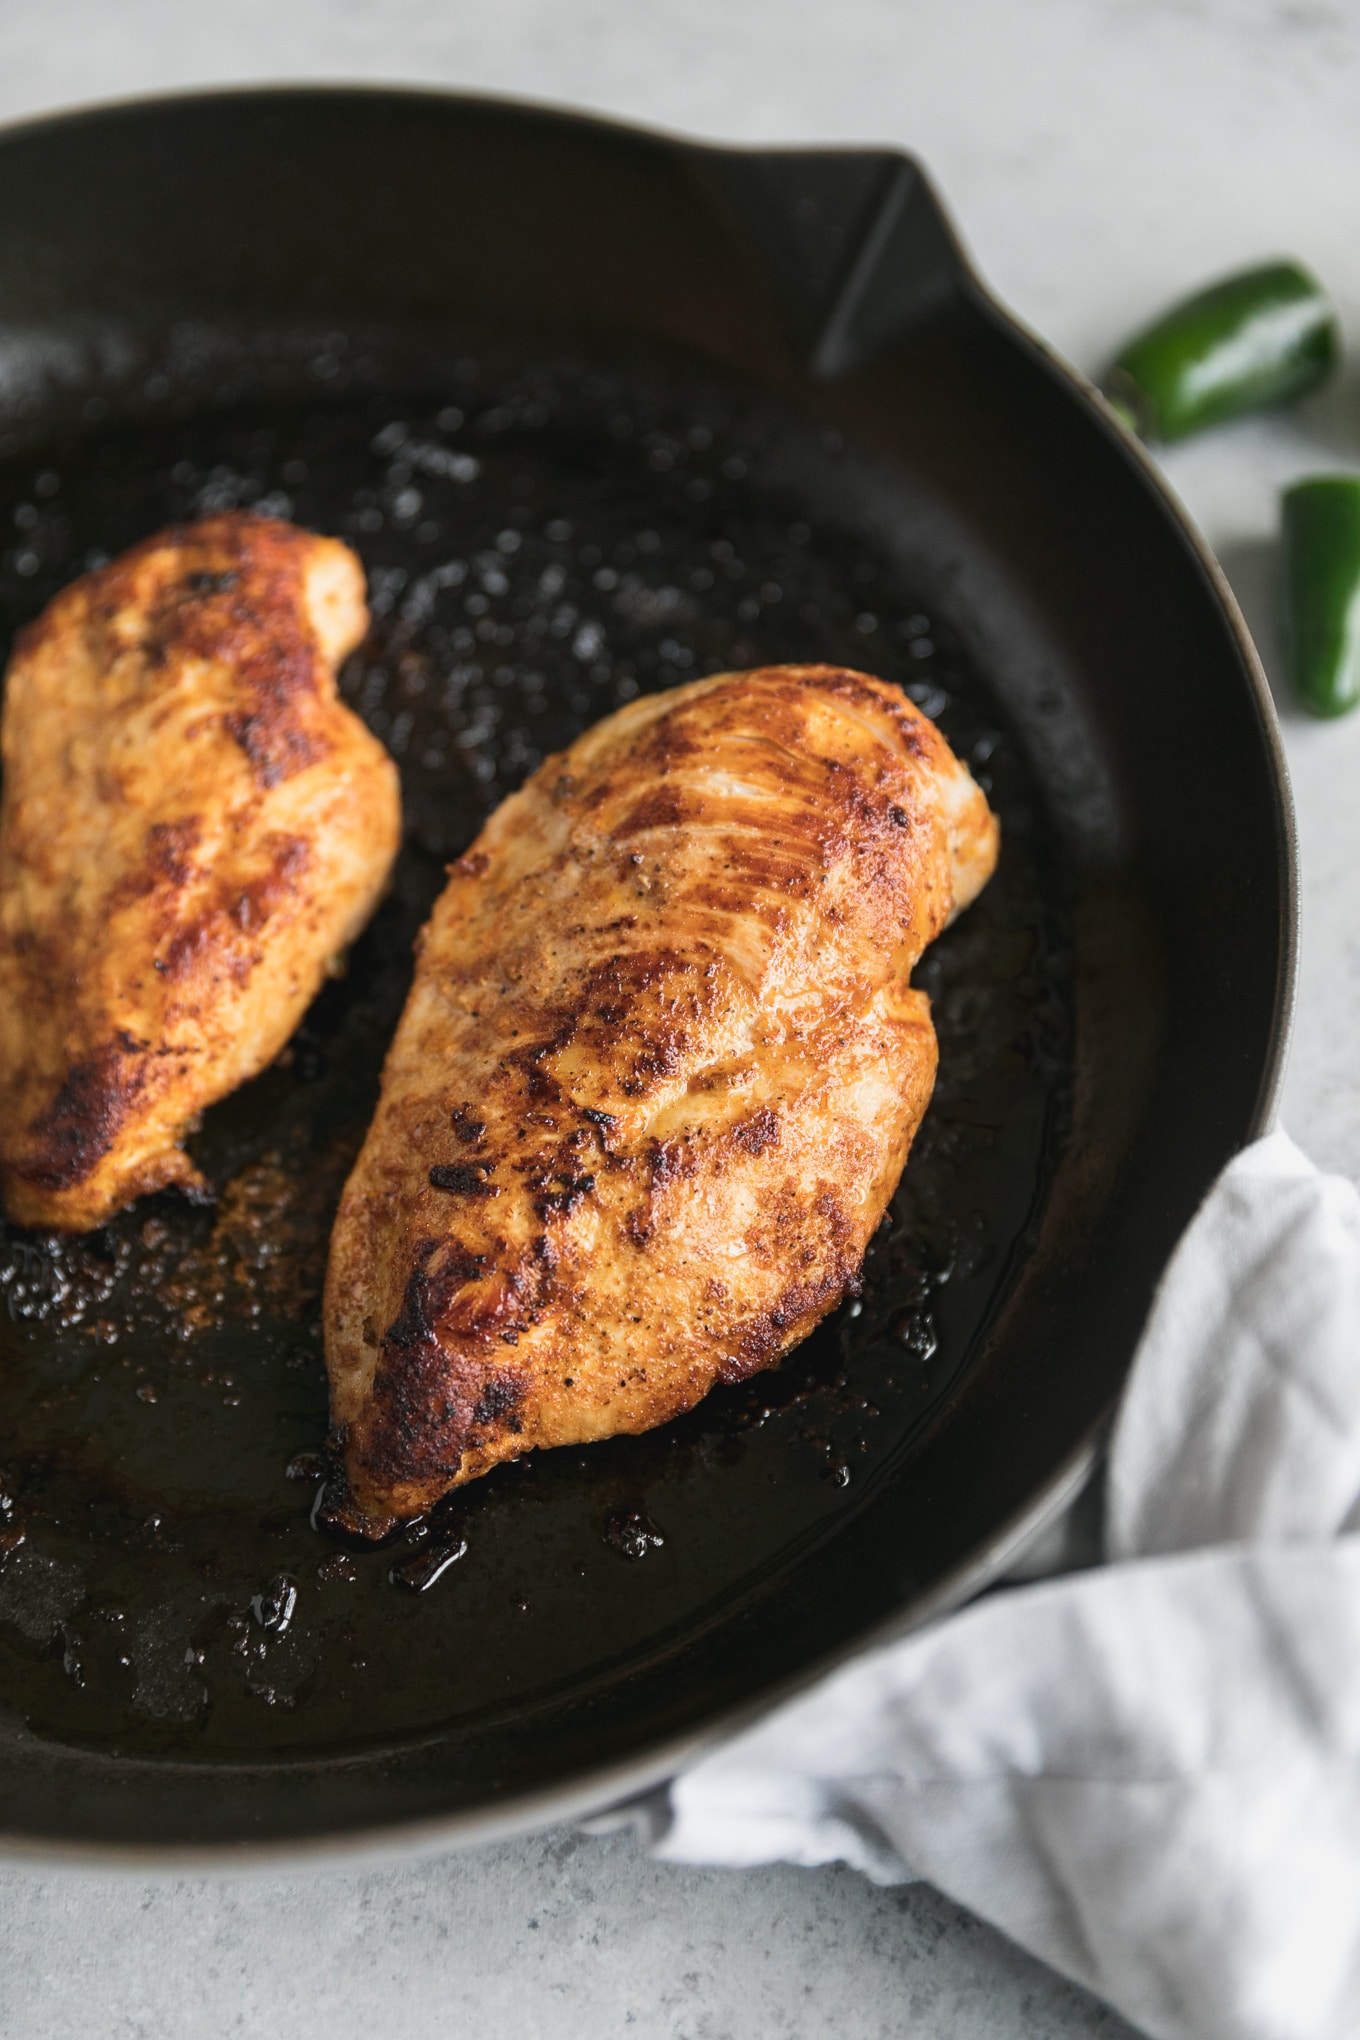 Close up shot of two golden brown chicken breasts cooked in a cast iron skillet